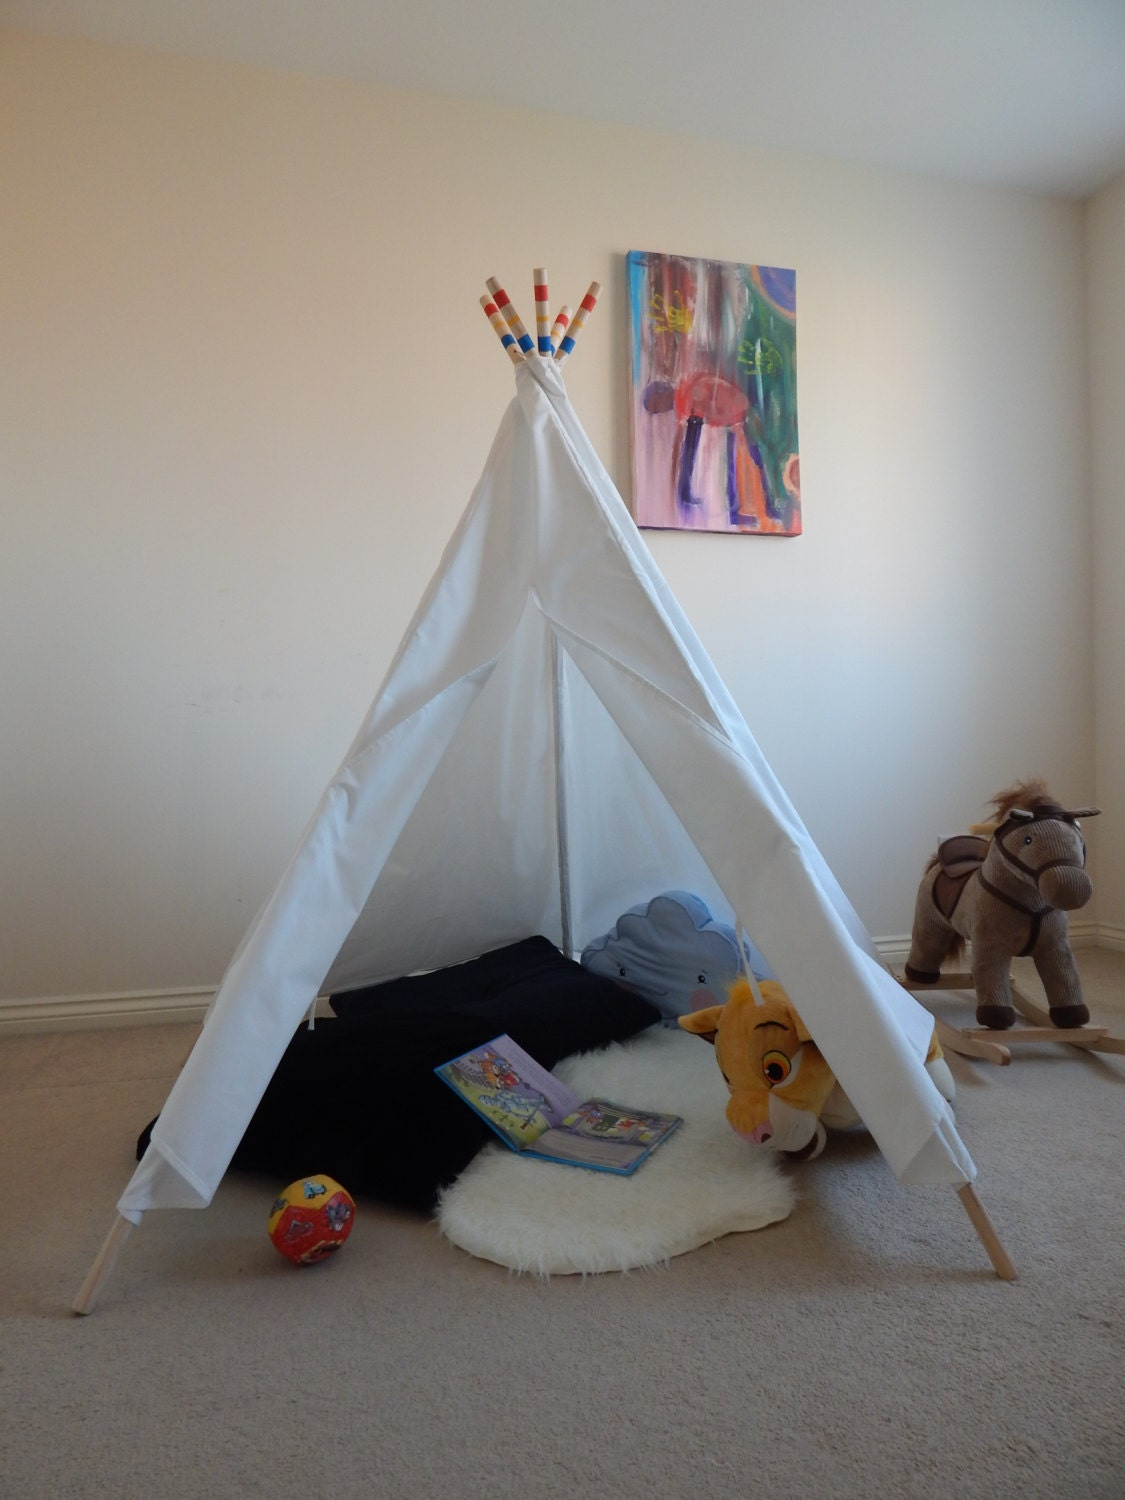 kinder spielen tipi zelt tipi zelt tipi wigwam tipi tipi. Black Bedroom Furniture Sets. Home Design Ideas